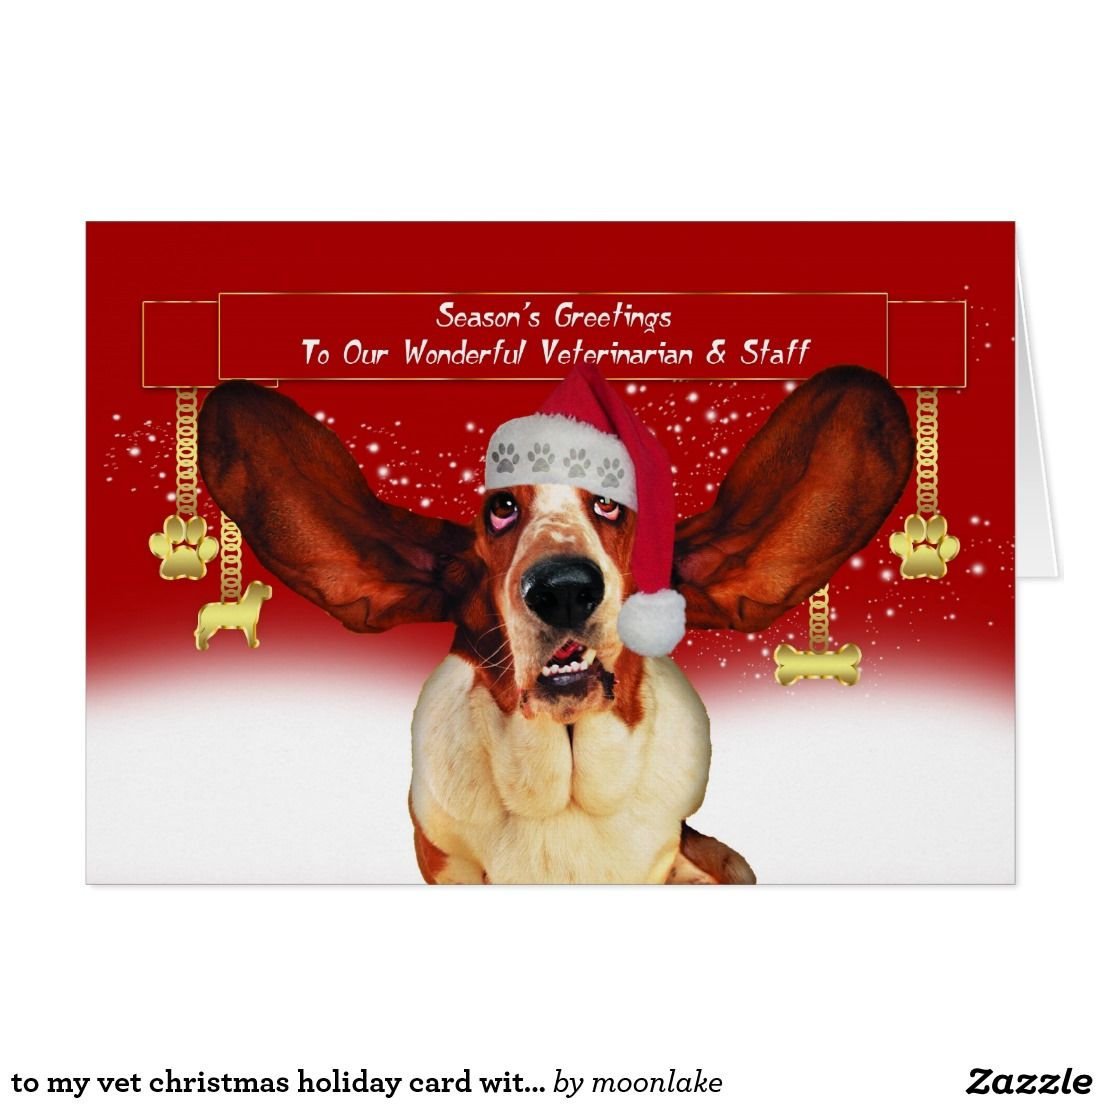 To my vet christmas holiday card with basset hound | Christmas Cards ...